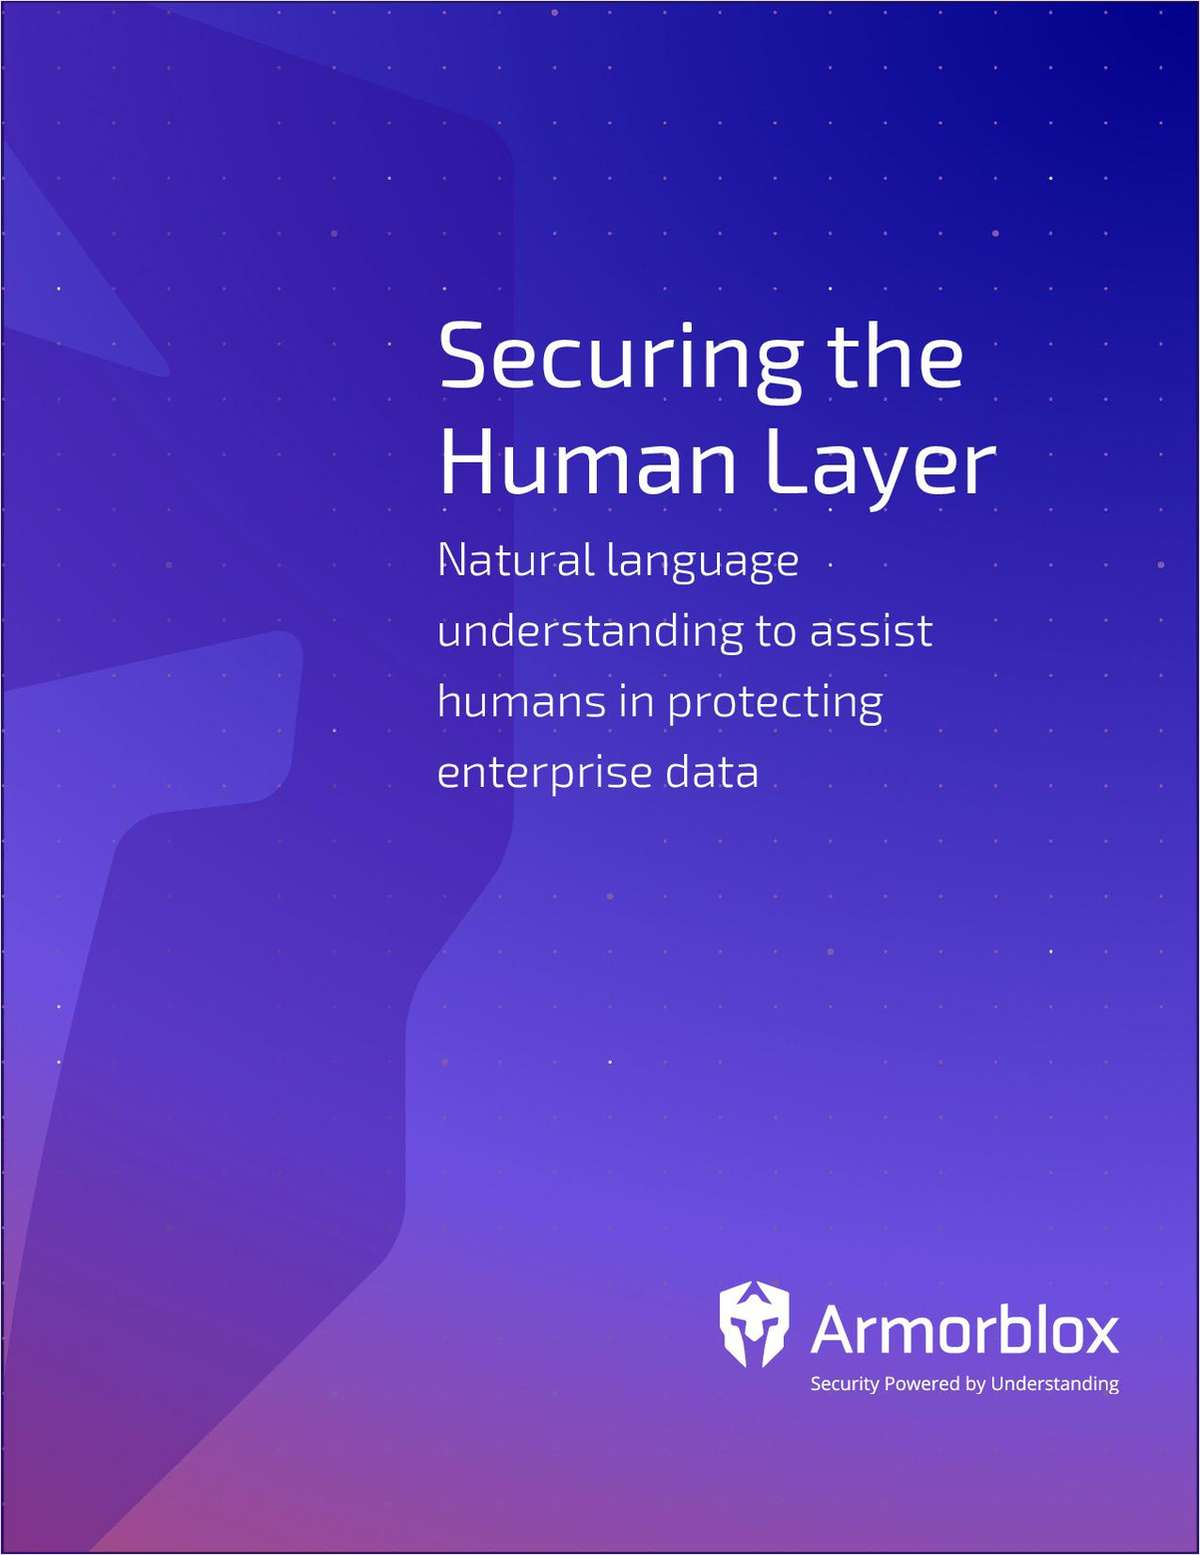 Securing the Human Layer